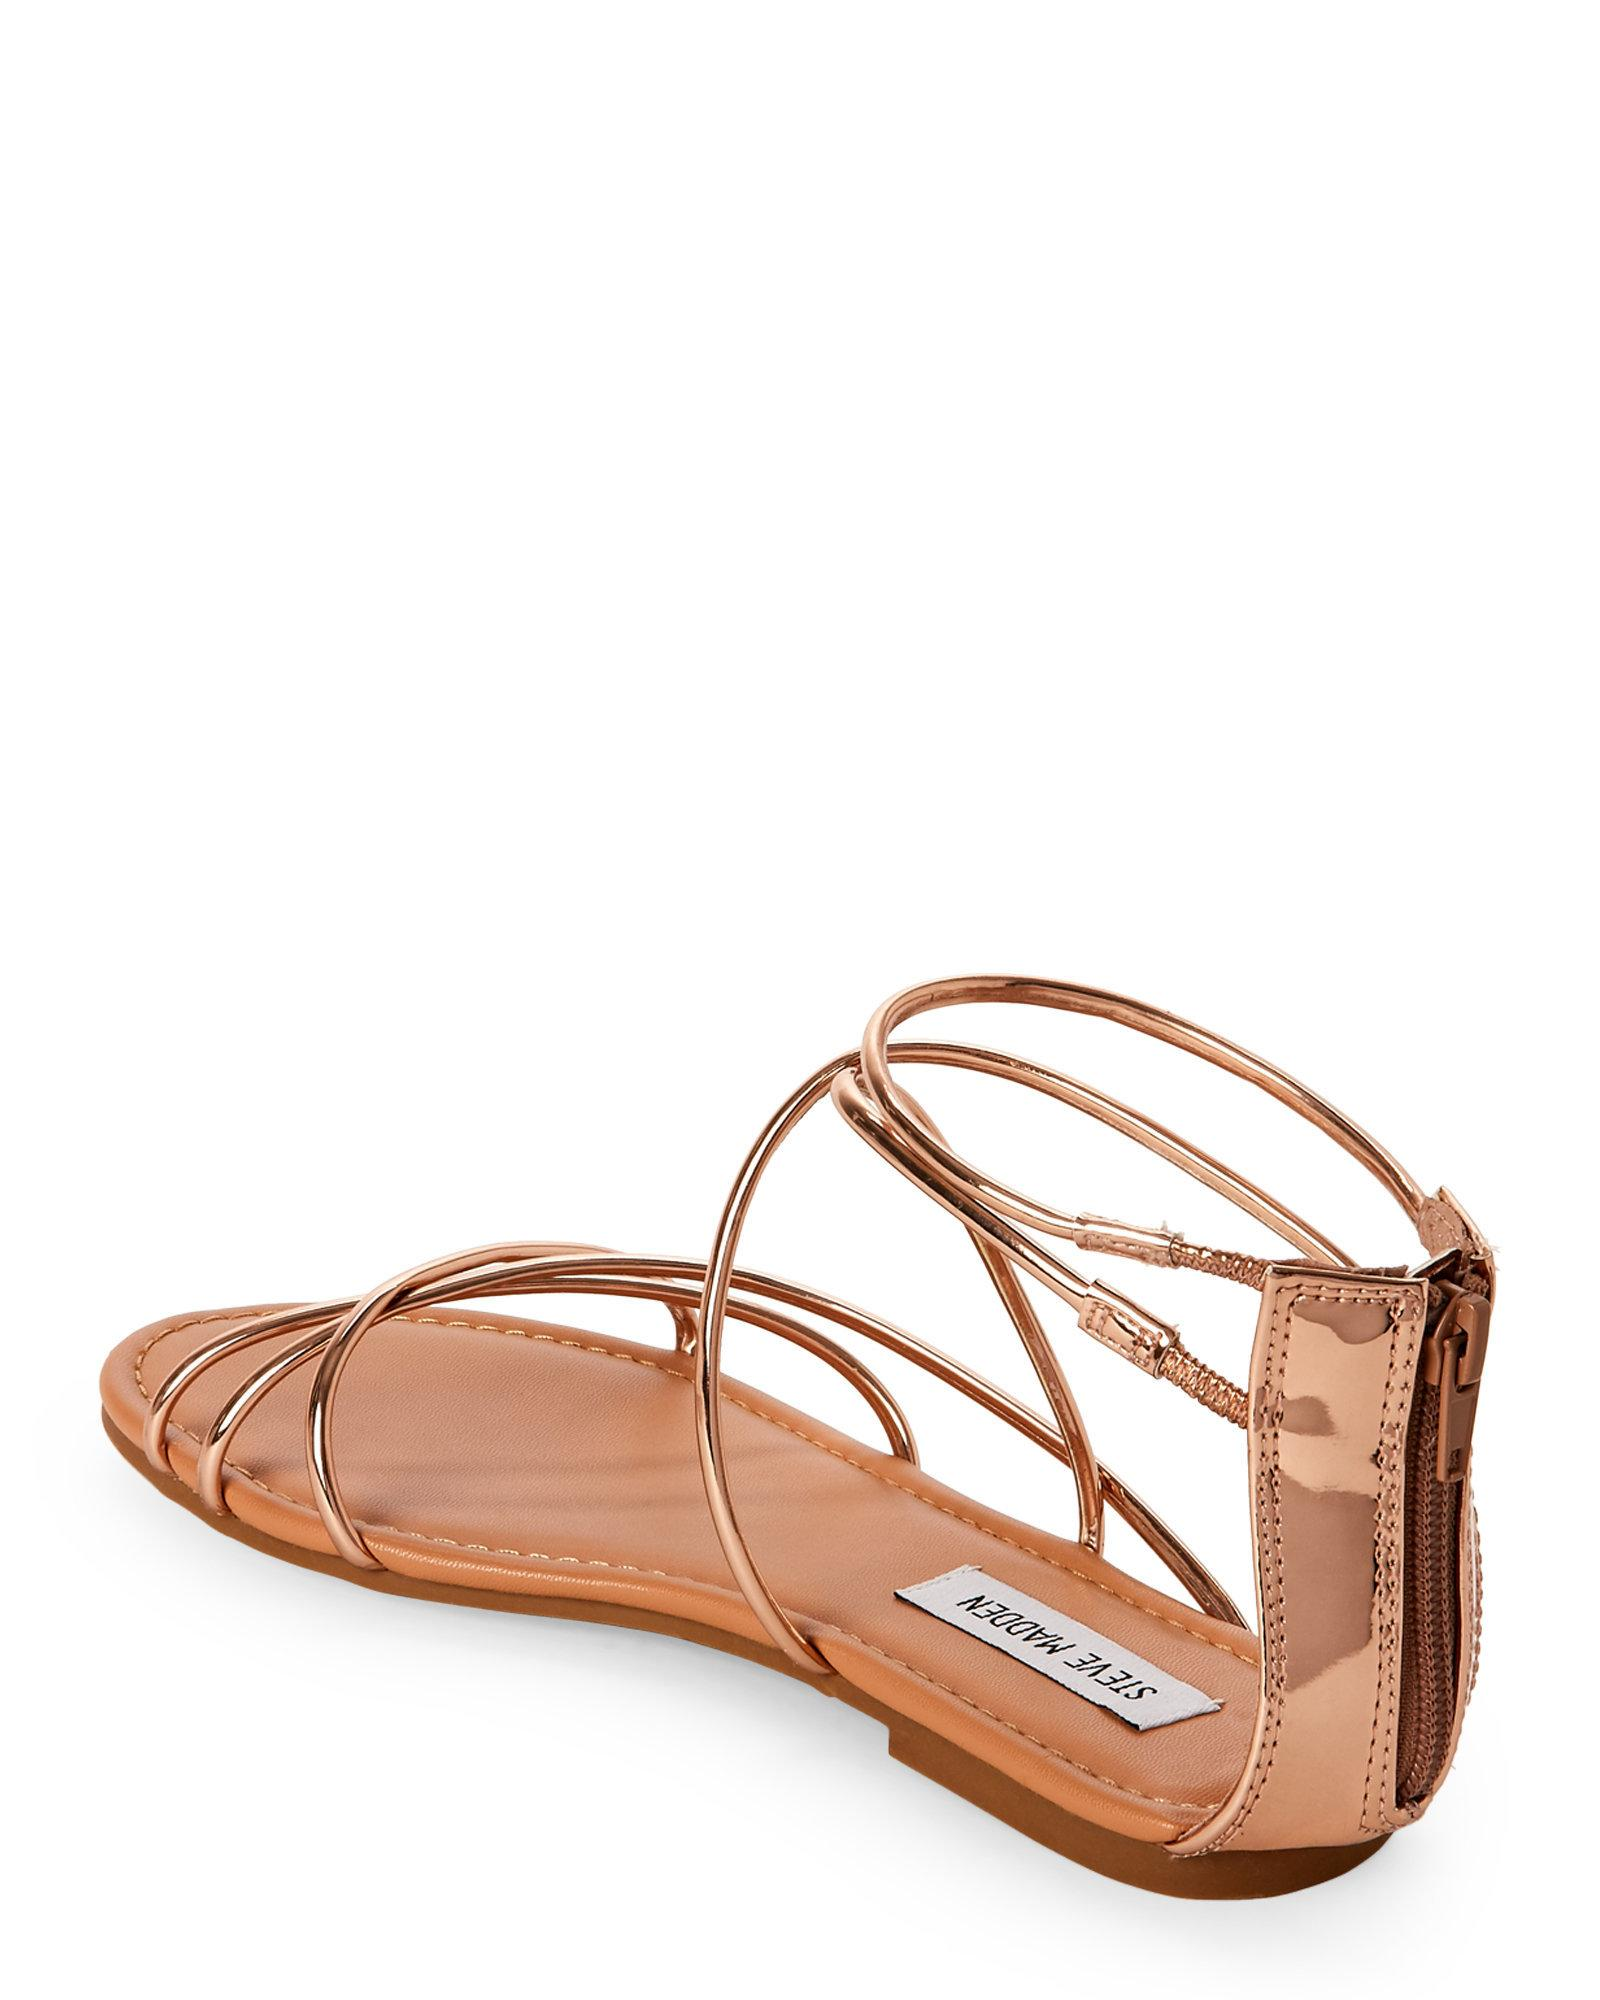 82e666d954dd Lyst - Steve Madden Rose Gold Sapphire Strappy Flat Sandals in Metallic